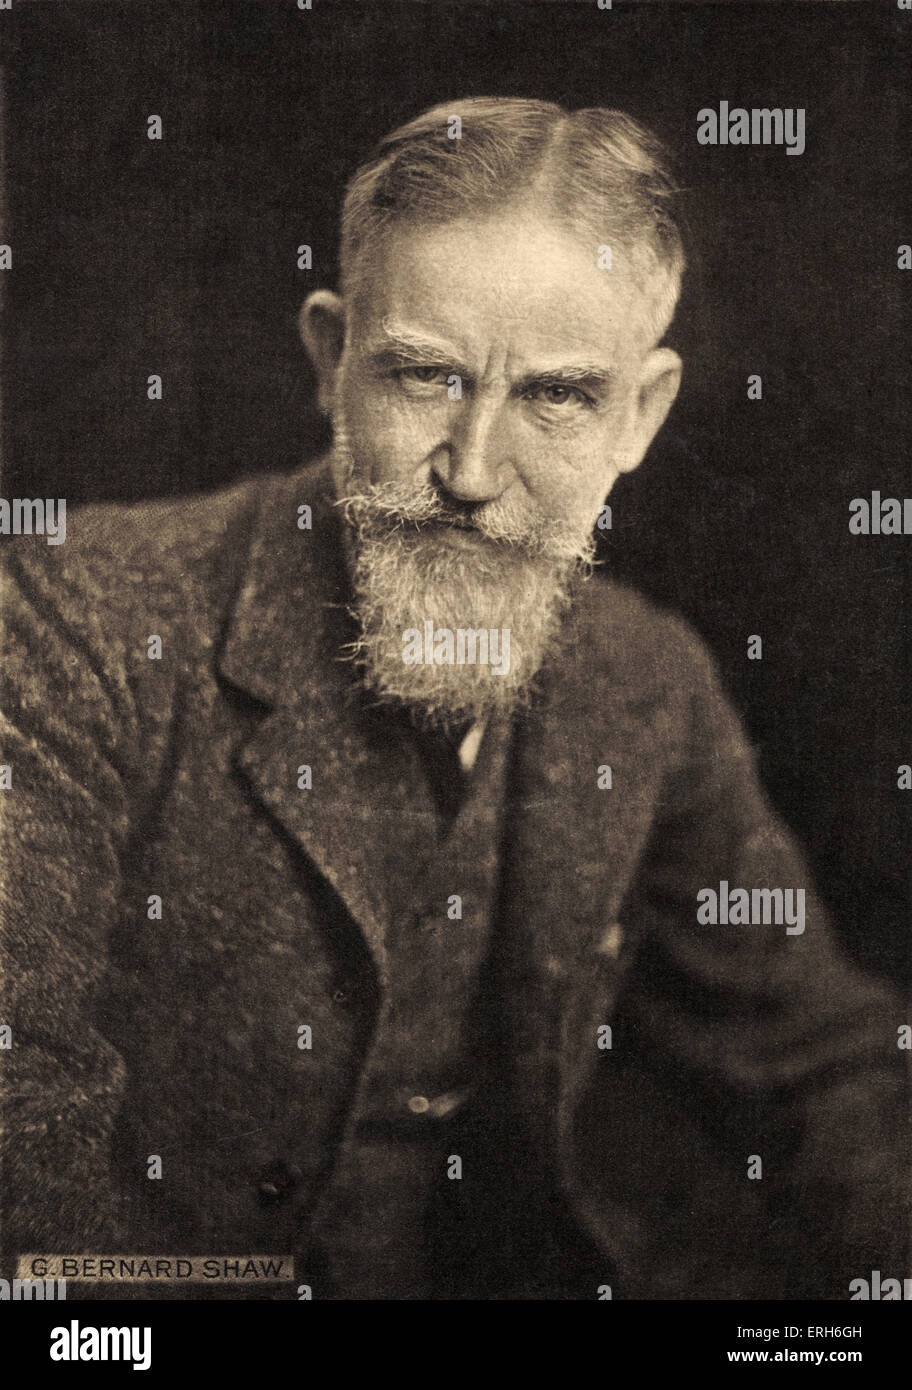 george bernard shaw portrait english writer stock george bernard shaw portrait english writer 1856 1950